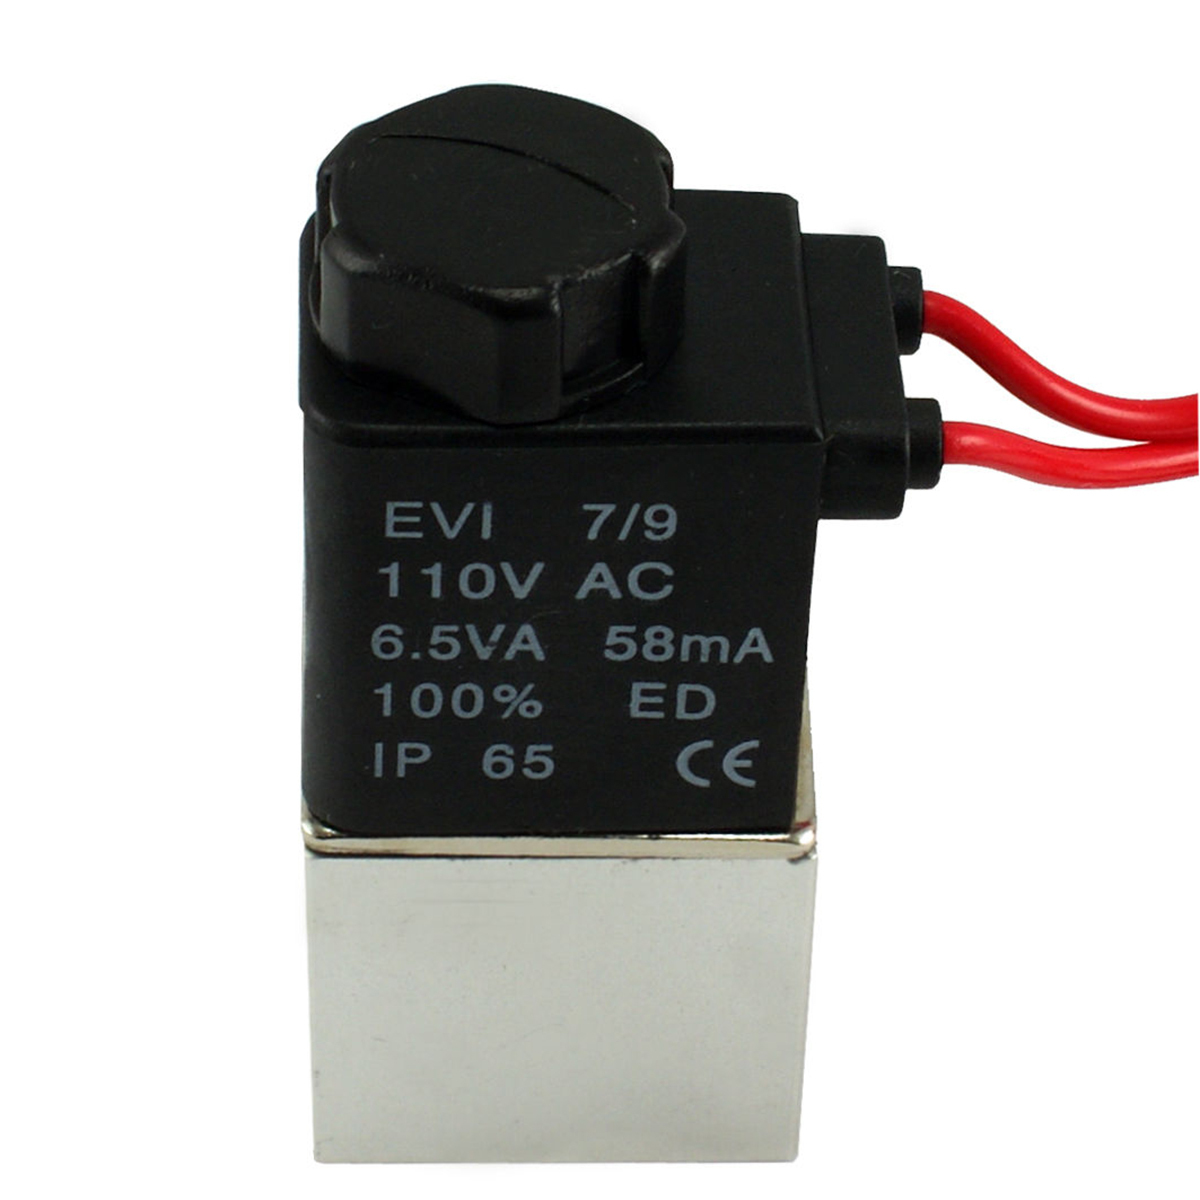 1pc Stable Electric Solenoid Valve Mayitr 1/4 NPT Female Port Brass 2 Way Normally Closed Valves DC 24V/110V for Air Water Gas dc 24v 2 port 2 way 1 2pt female thread pneumatic electric solenoid valve